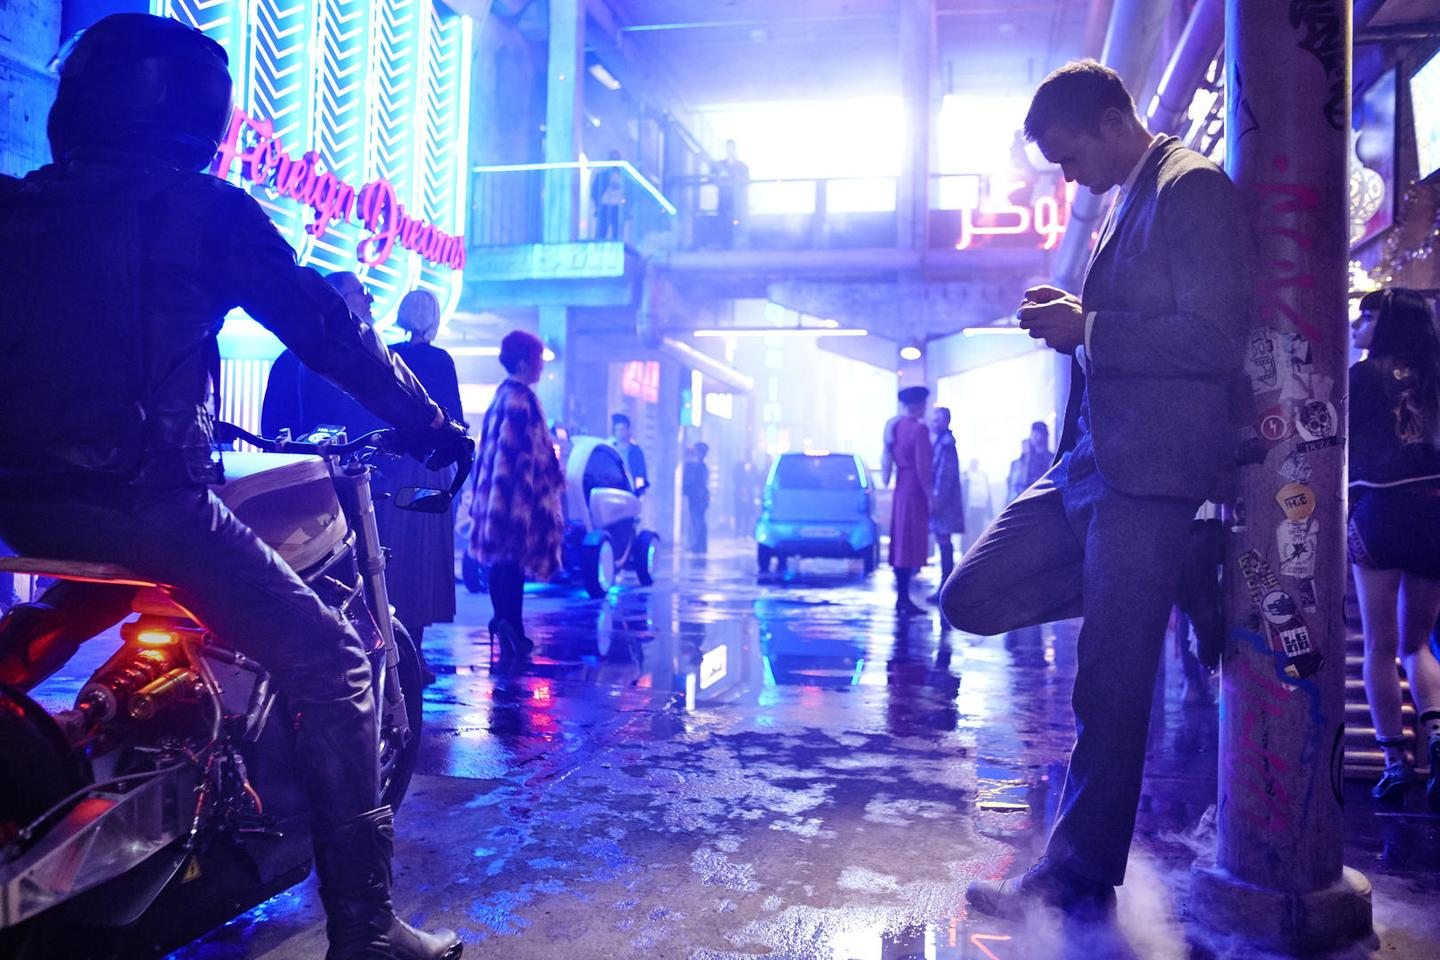 The wet, neon-covered city streets directly recall Blade Runner in Duncan Jones' upcoming Mute